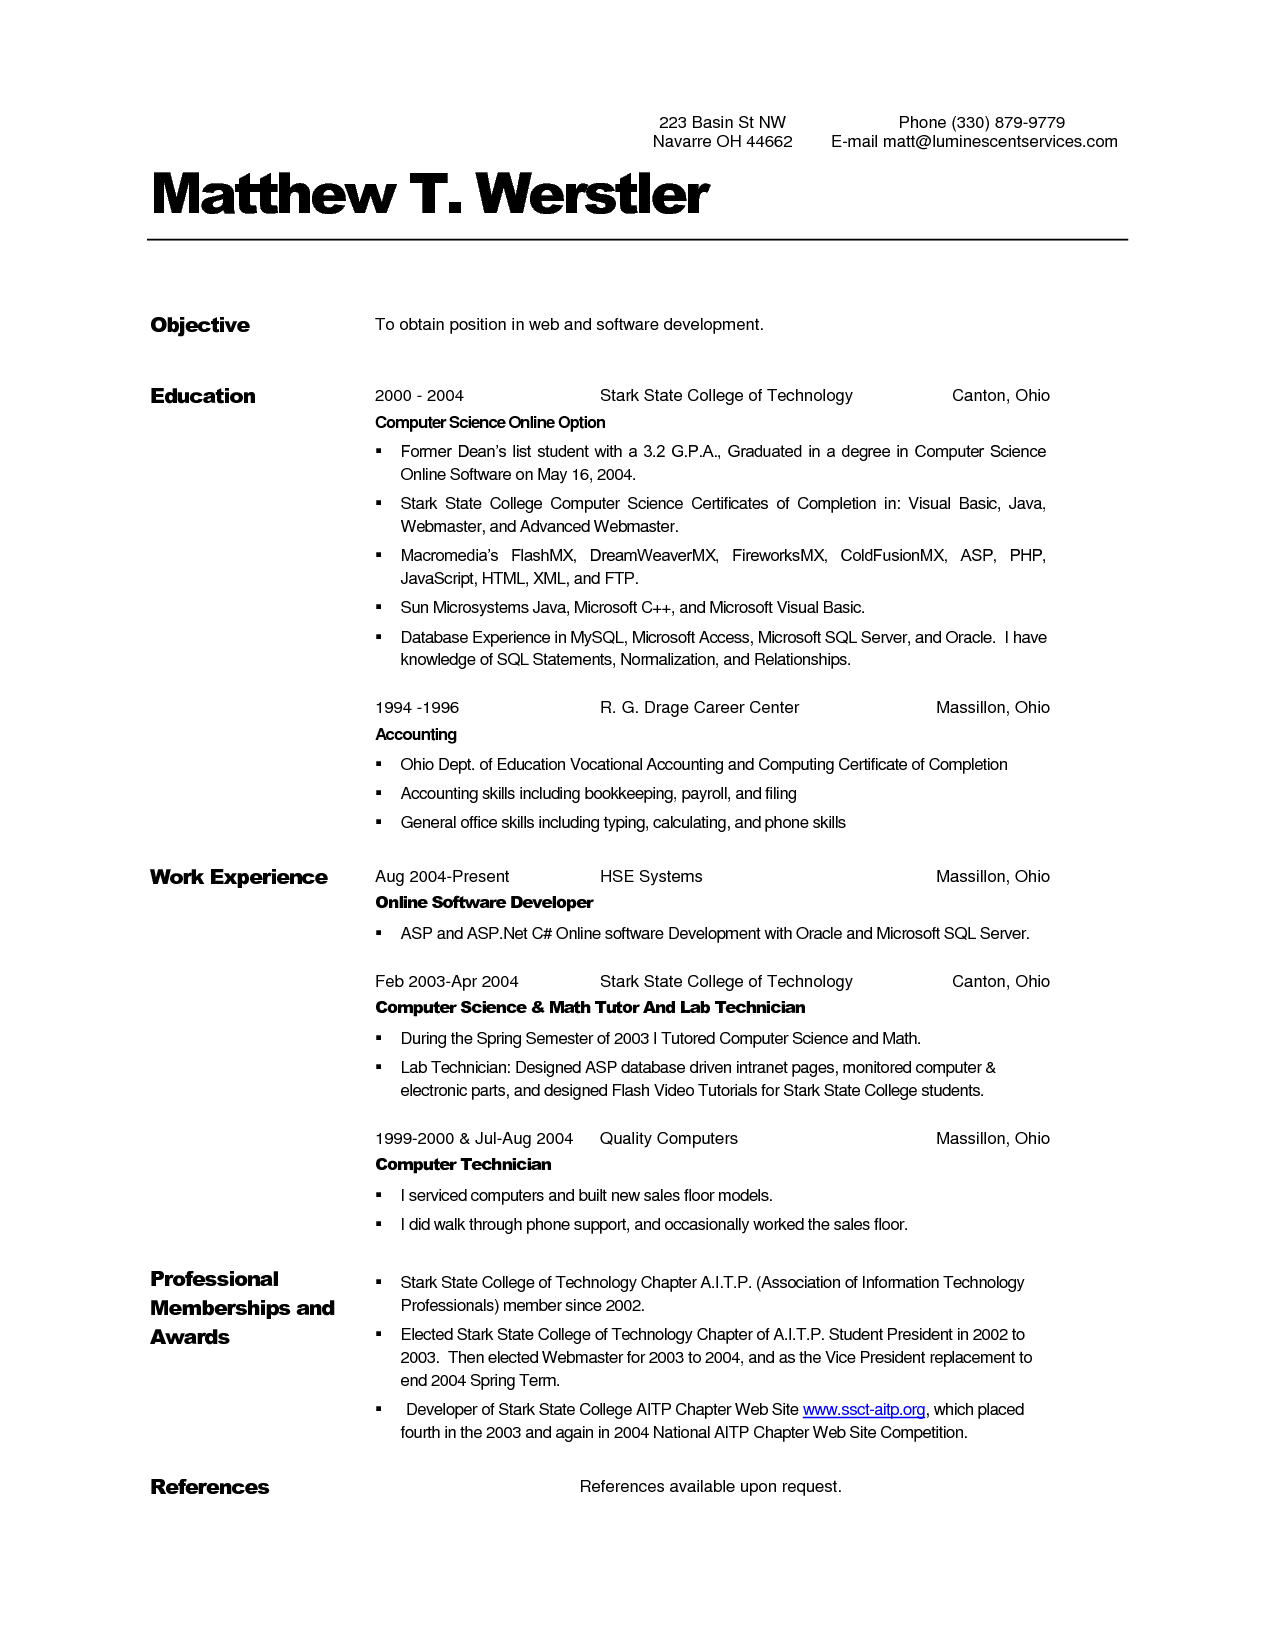 Computer Science Resume Templates SampleBusinessResumecom